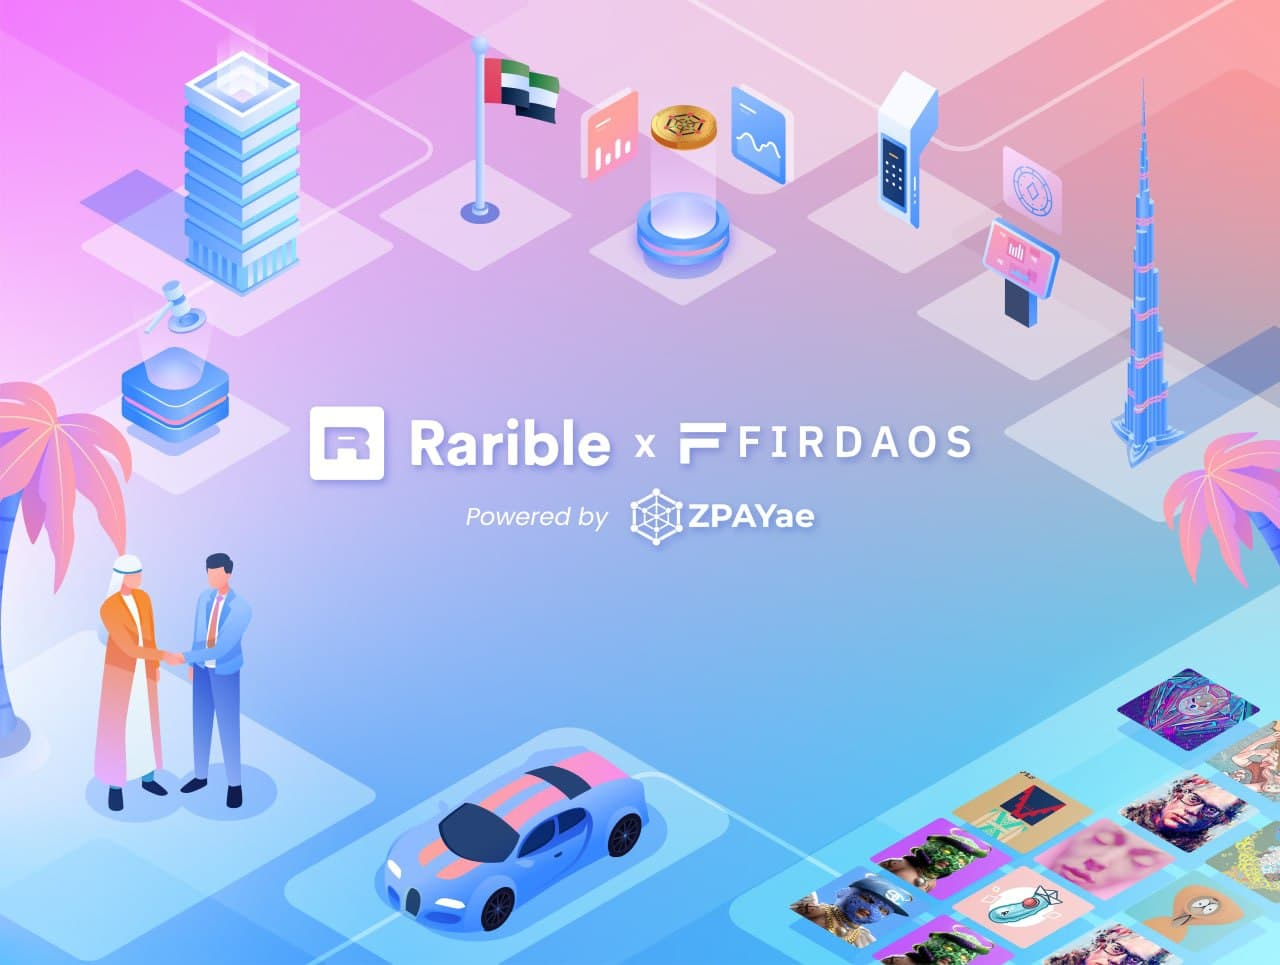 Firdaos Announces Their Native Token $FDO is Accepted on one of the Largest NFT Marketplaces, Rarible